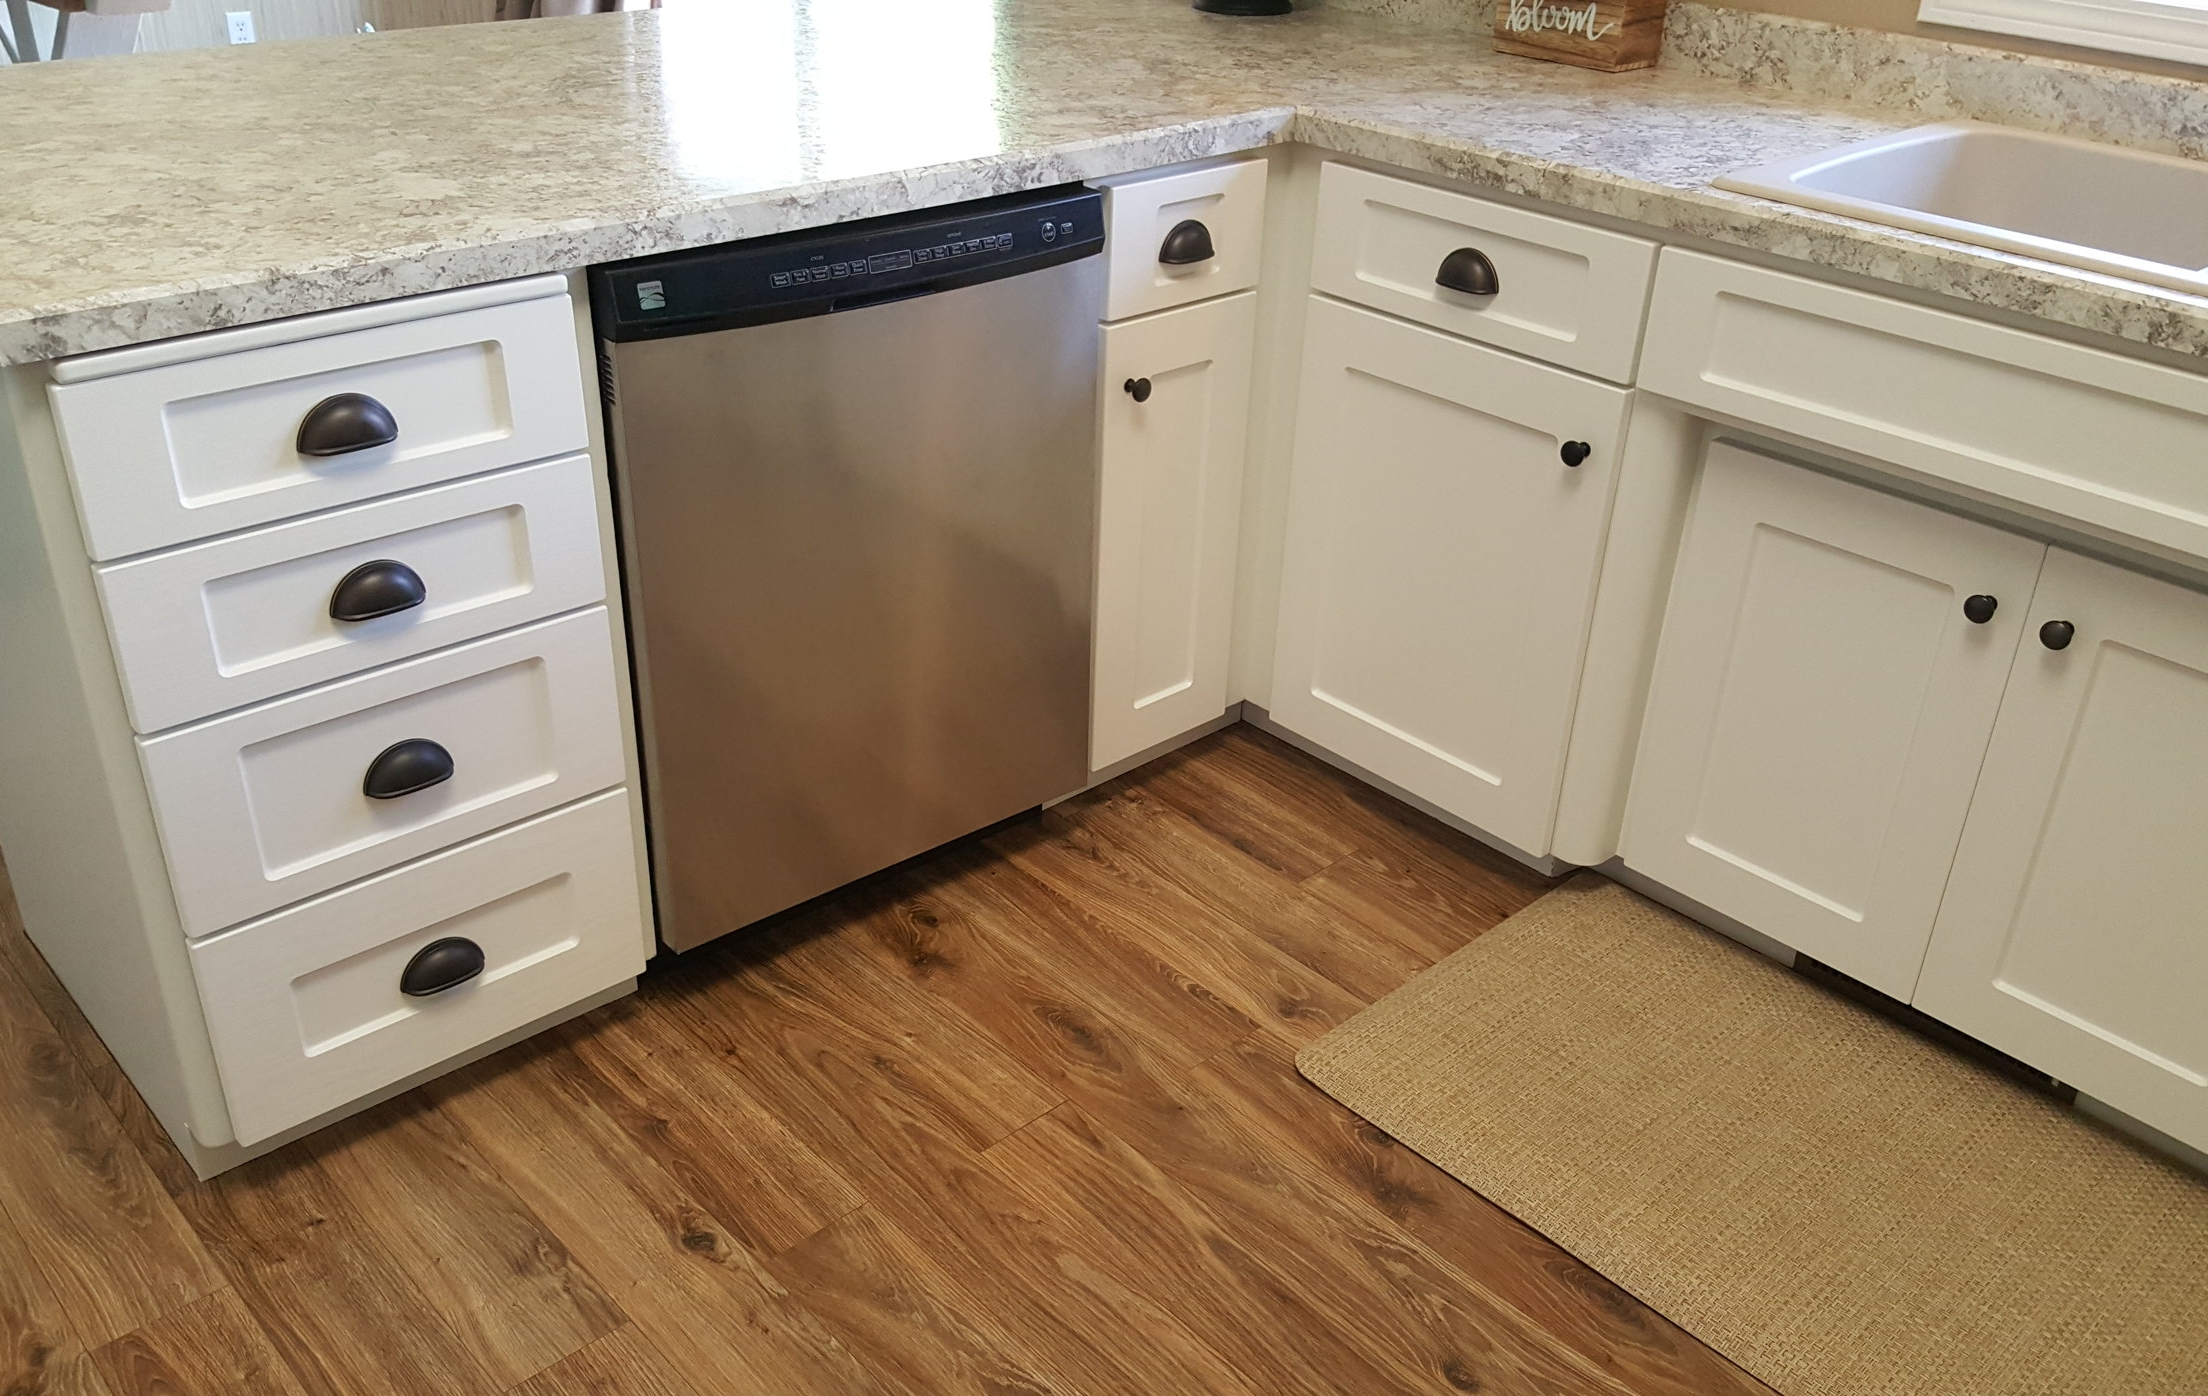 An easy and enjoyable kitchen remodel - Kristi H., Bismarck, N.D.Who knew an entire kitchen remodel could be easy and enjoyable?!?! Everything was coordinated for us from the countertops to the painting and all of the little details. And all of this was done in the most convenient manner - we could use our kitchen during the entire process! We highly recommend Kitchen Refresh!